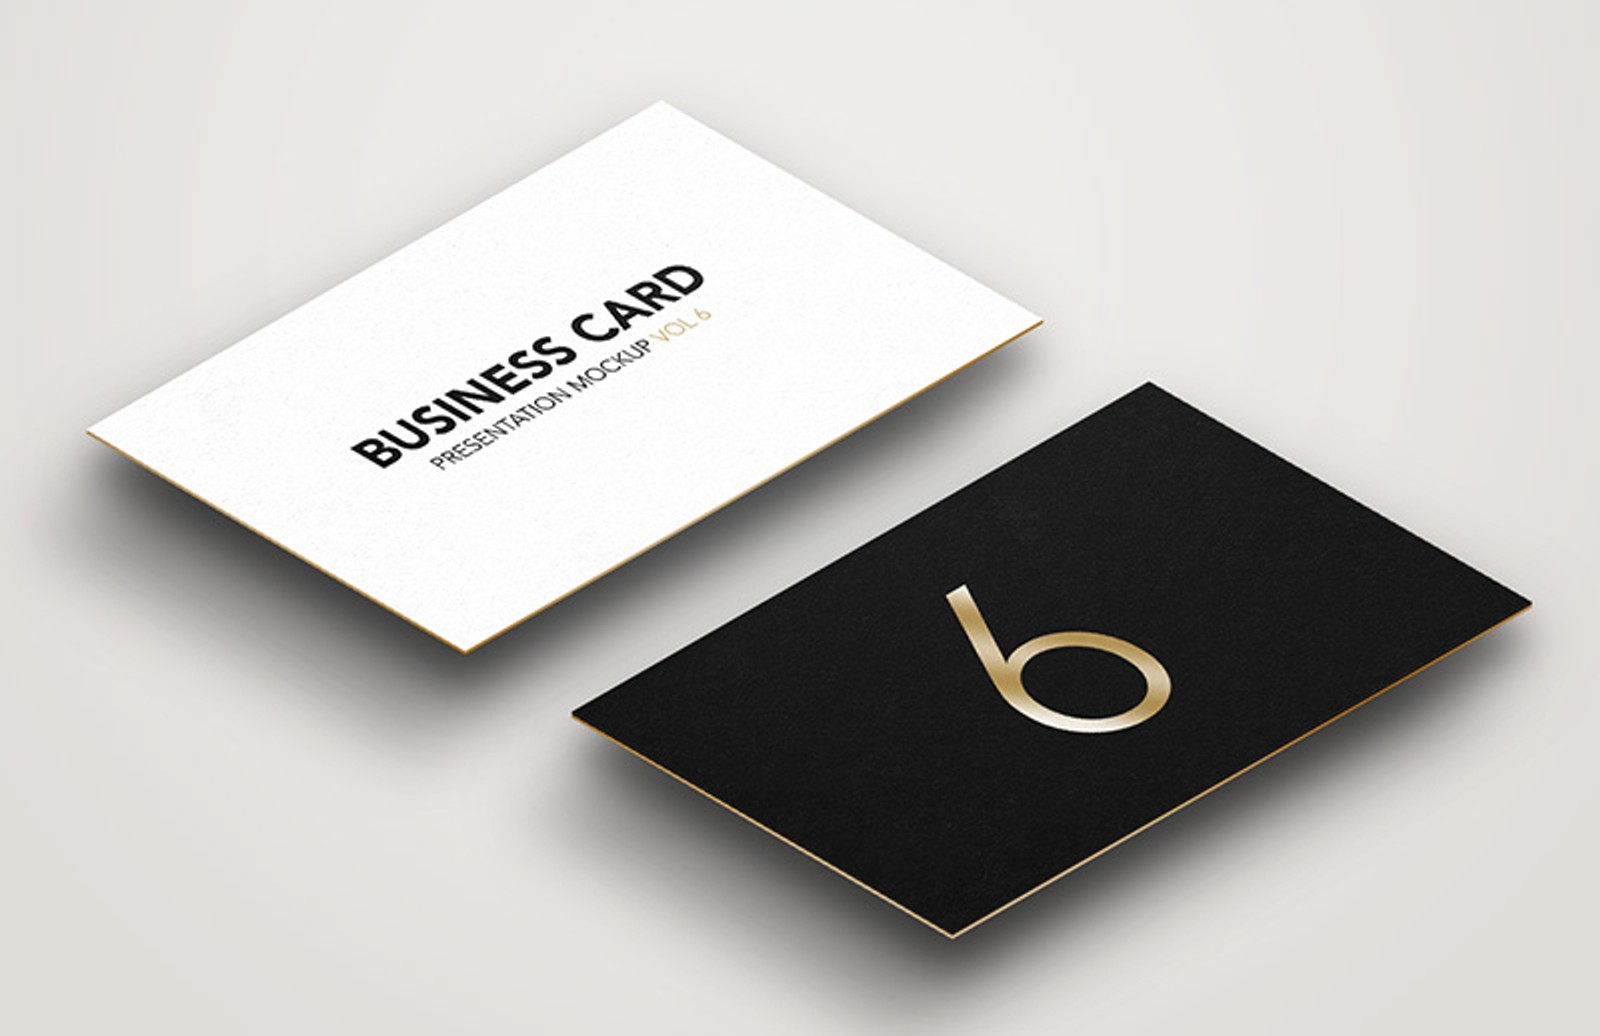 Business card mockup vol 6 medialoot business card mockup vol 6 preview 1 colourmoves